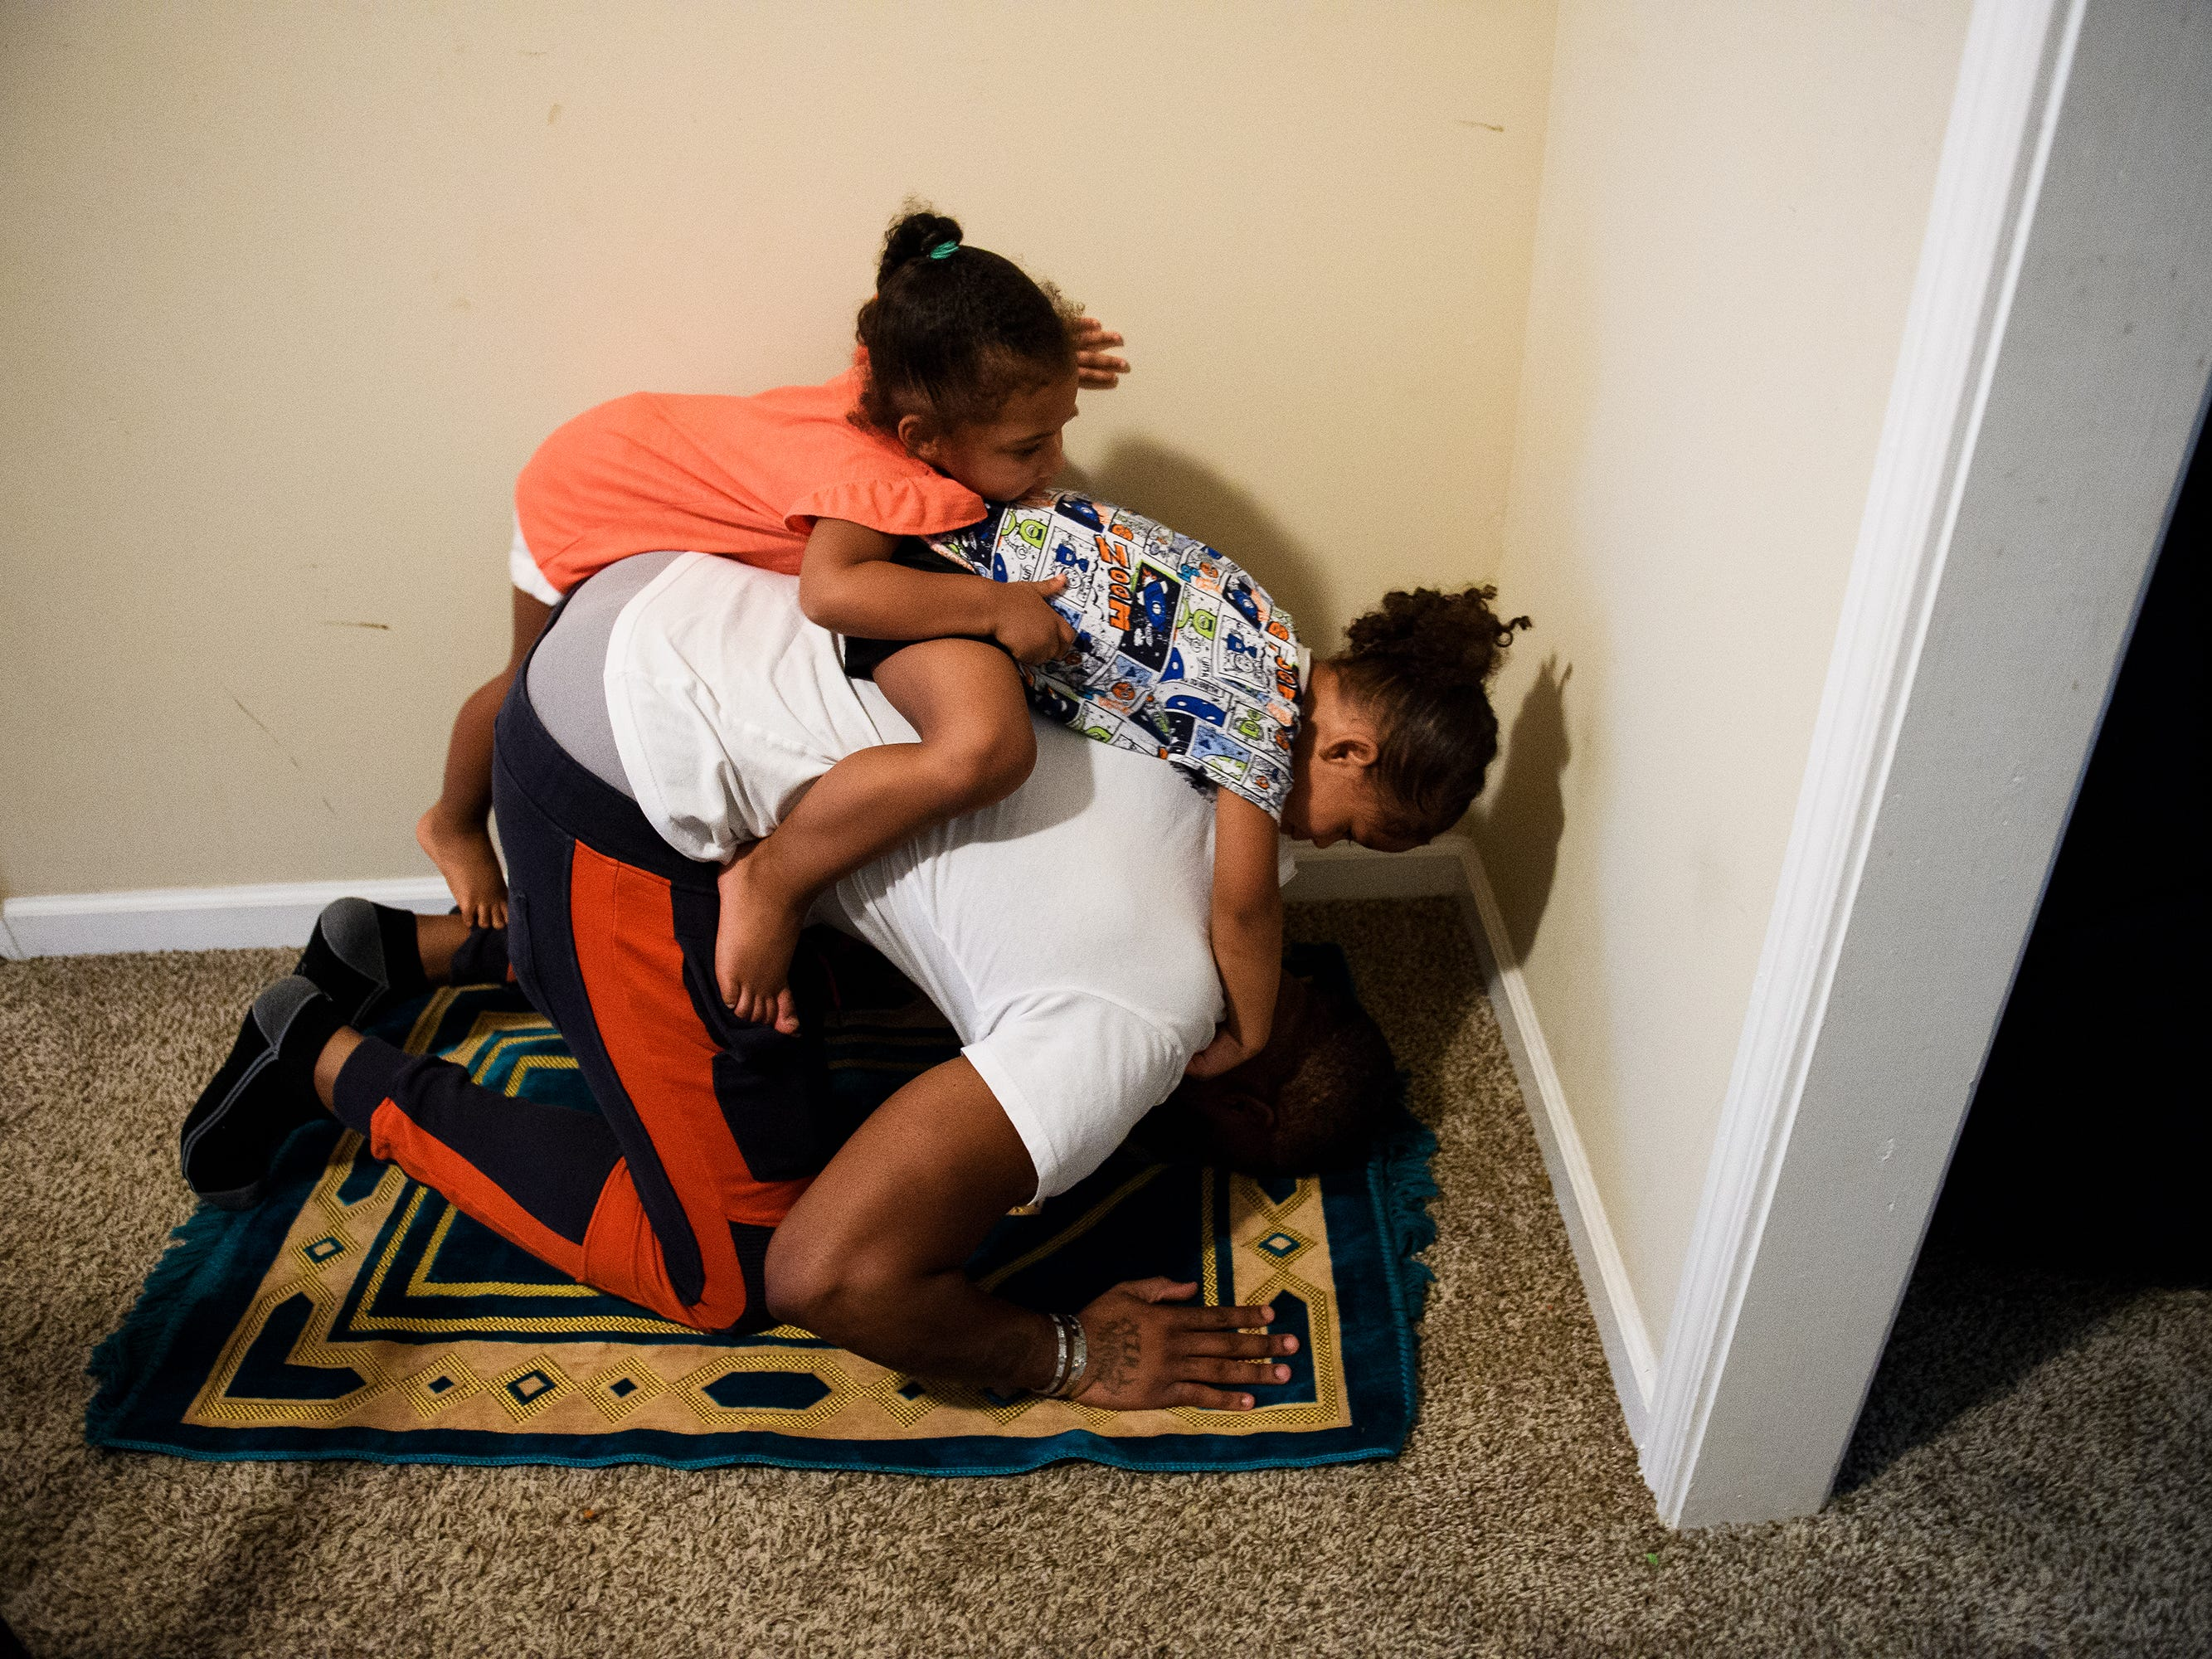 Yahya Grant and her brother Aliyah catch a ride their father's back as he prays.